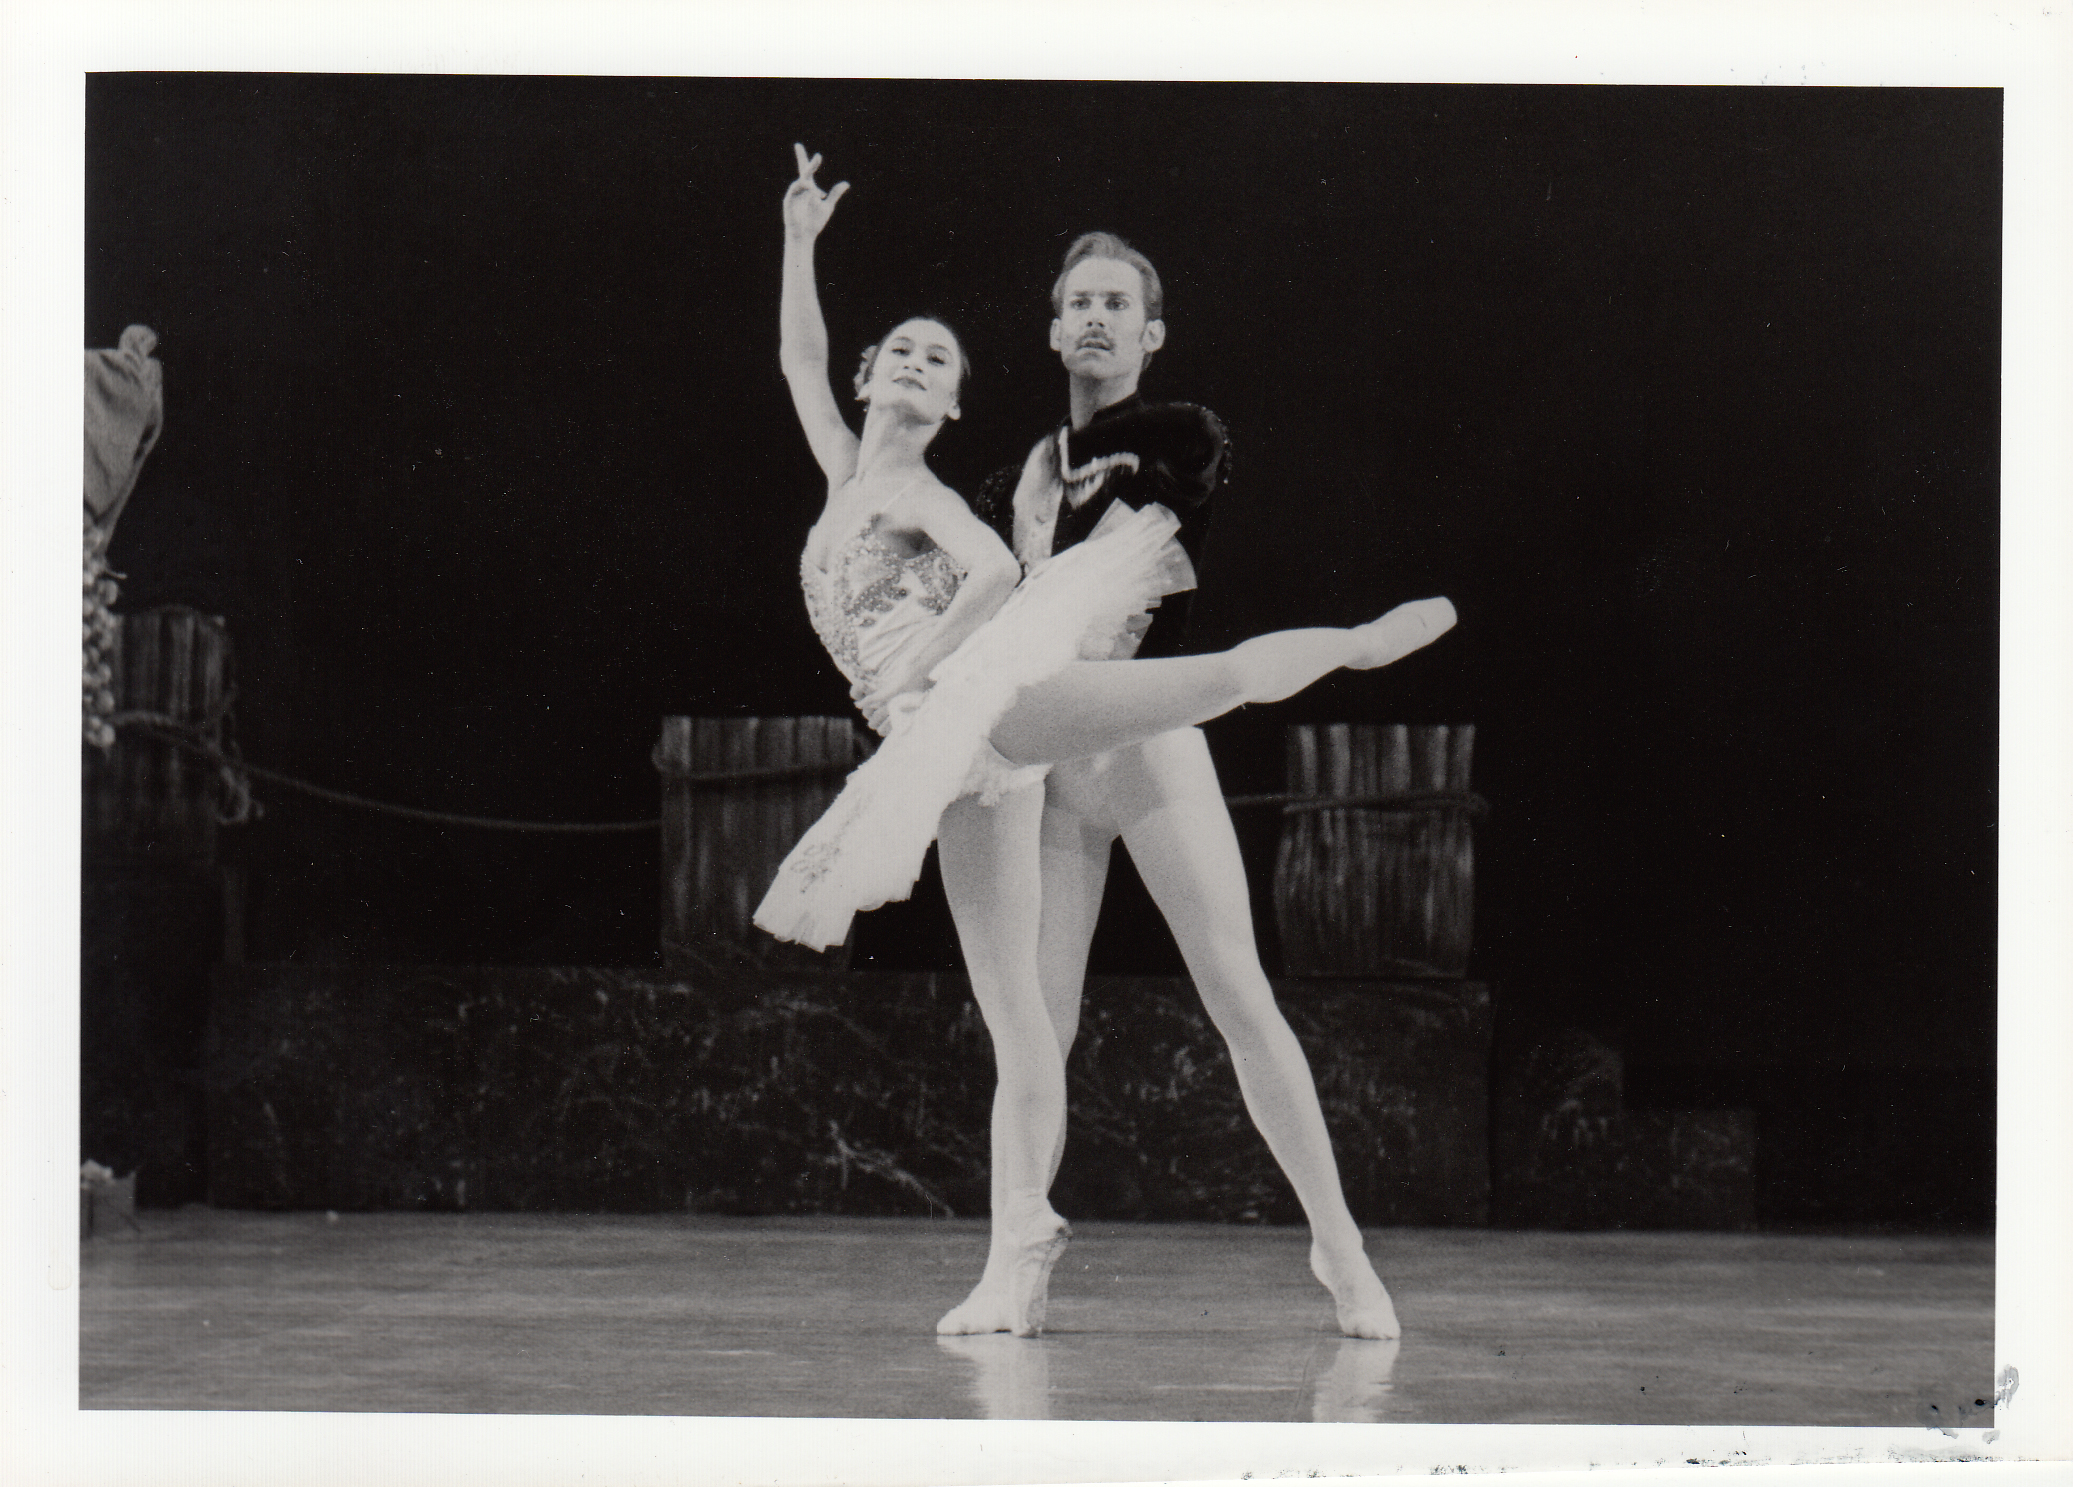 Wes Chapman, also of American Ballet Theater, dances with Lisa Macuja in another show of Don Quixote at the Cultural Center of the Philippines in 1993.